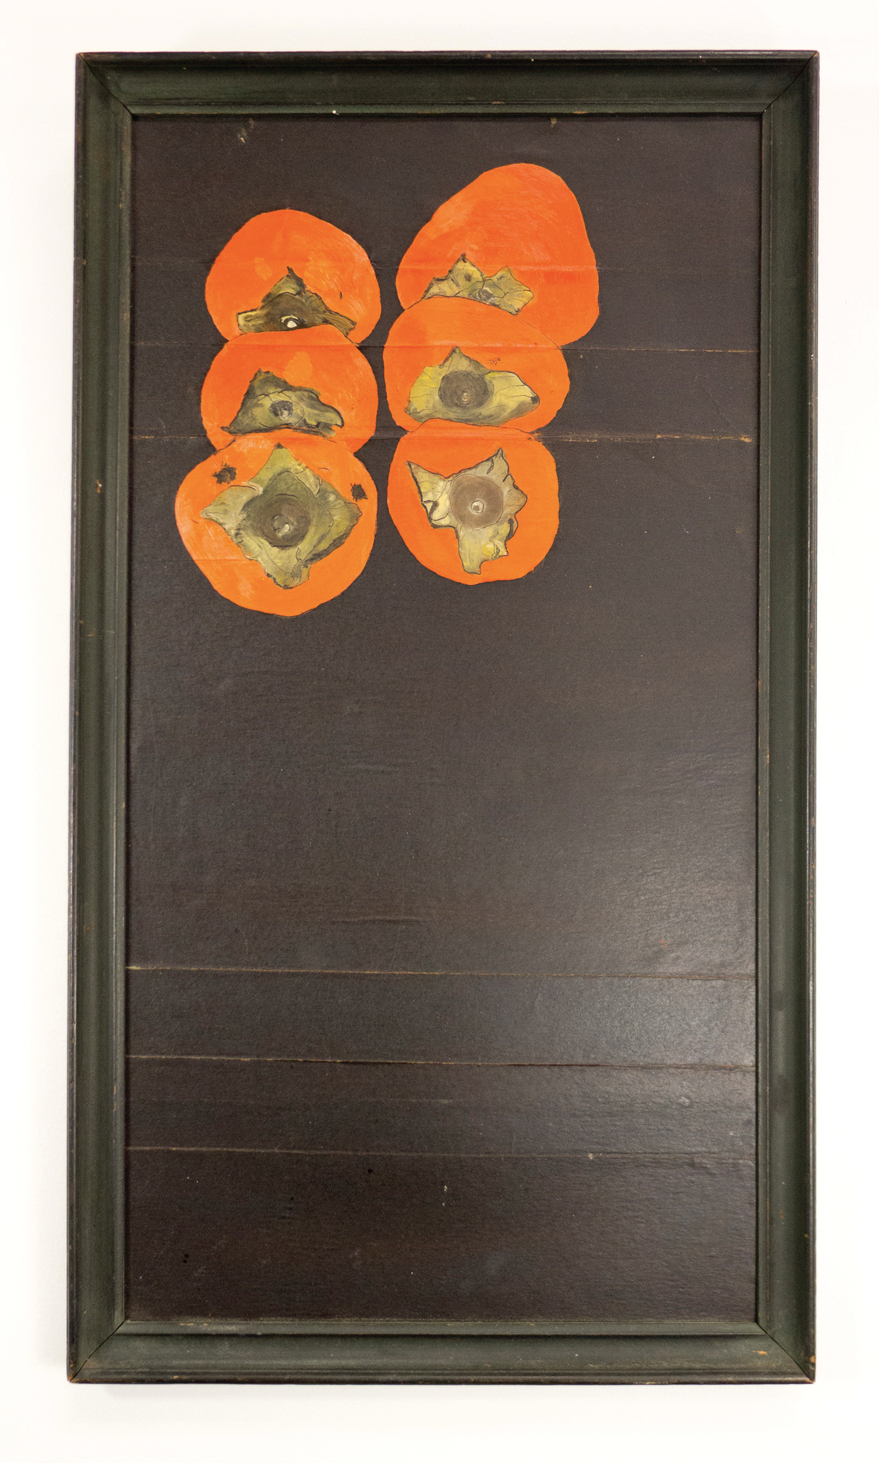 "Persimmons; 1950s; Ink and oil on board; 18 7/8 x 10 3/8""; Item #026"